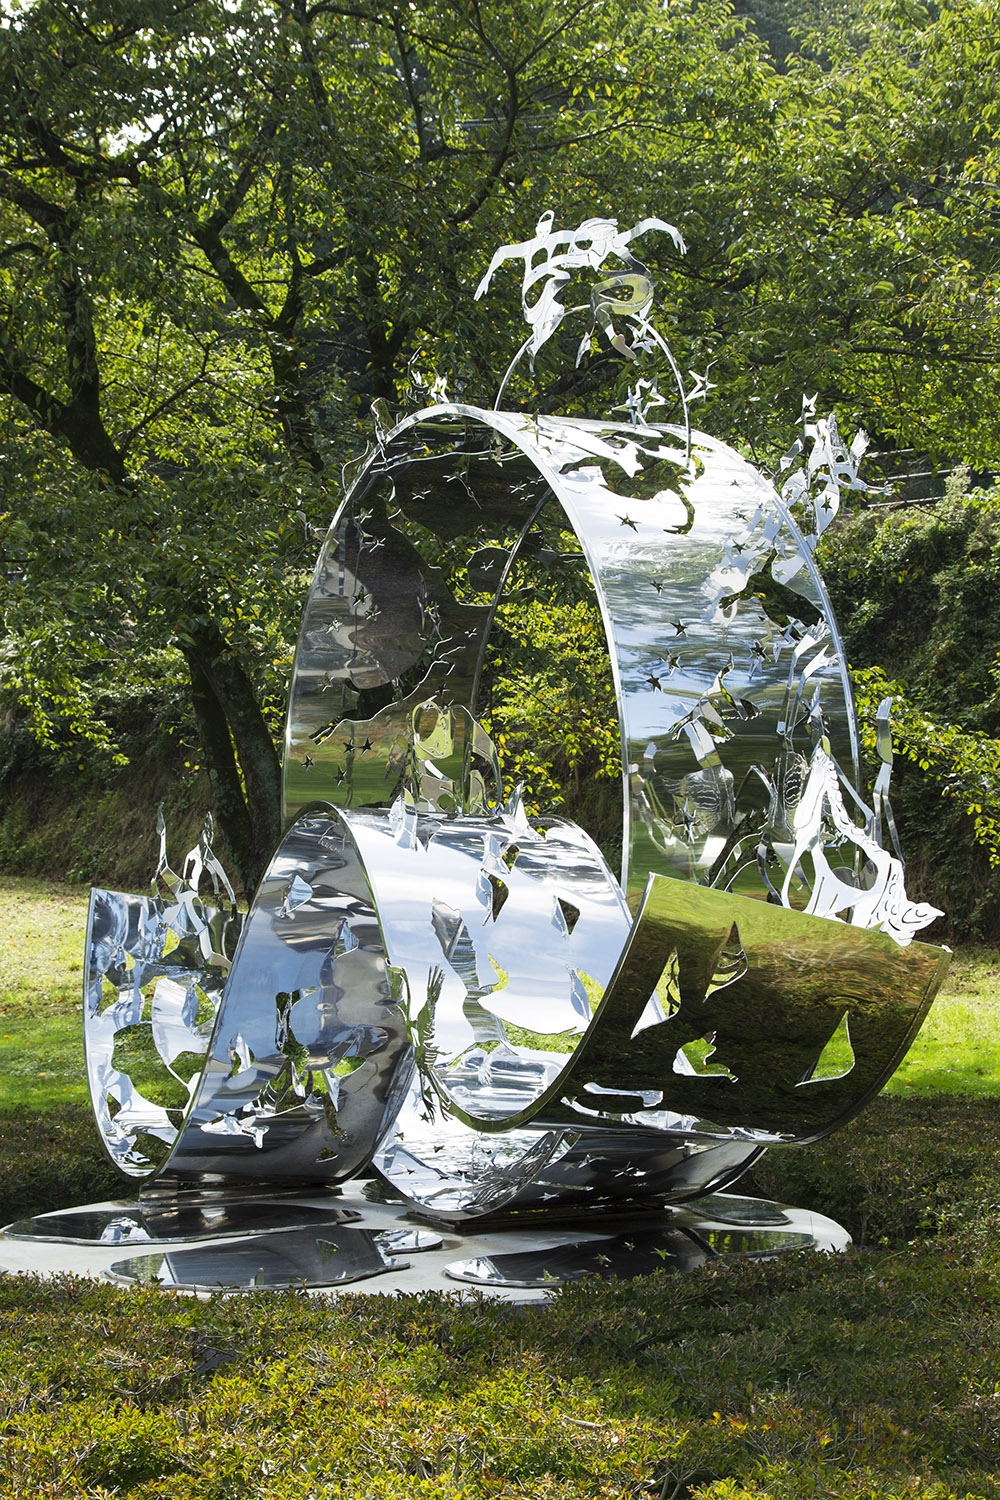 Dreams, 2012, Stainless steel, 4.1 x 5.2 x 4.6 m